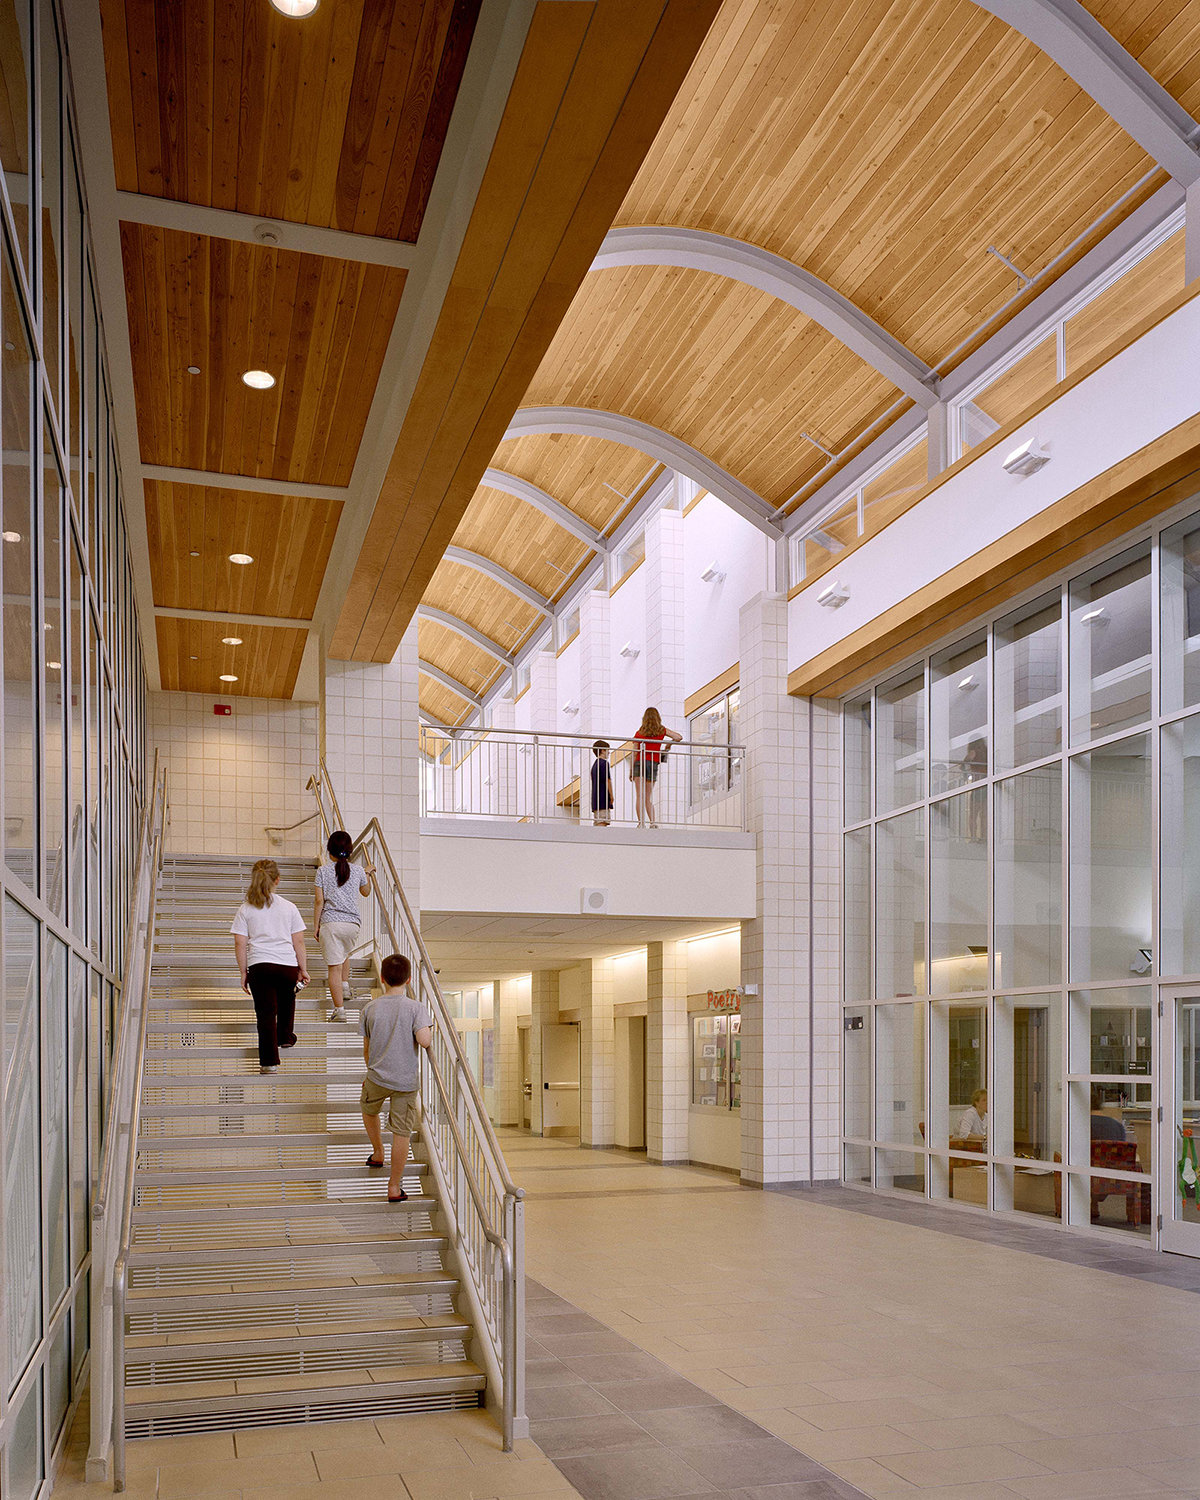 5 tskp fairfield mckinely elementary school interior detail windows lighting roof design 1400 xxx q85